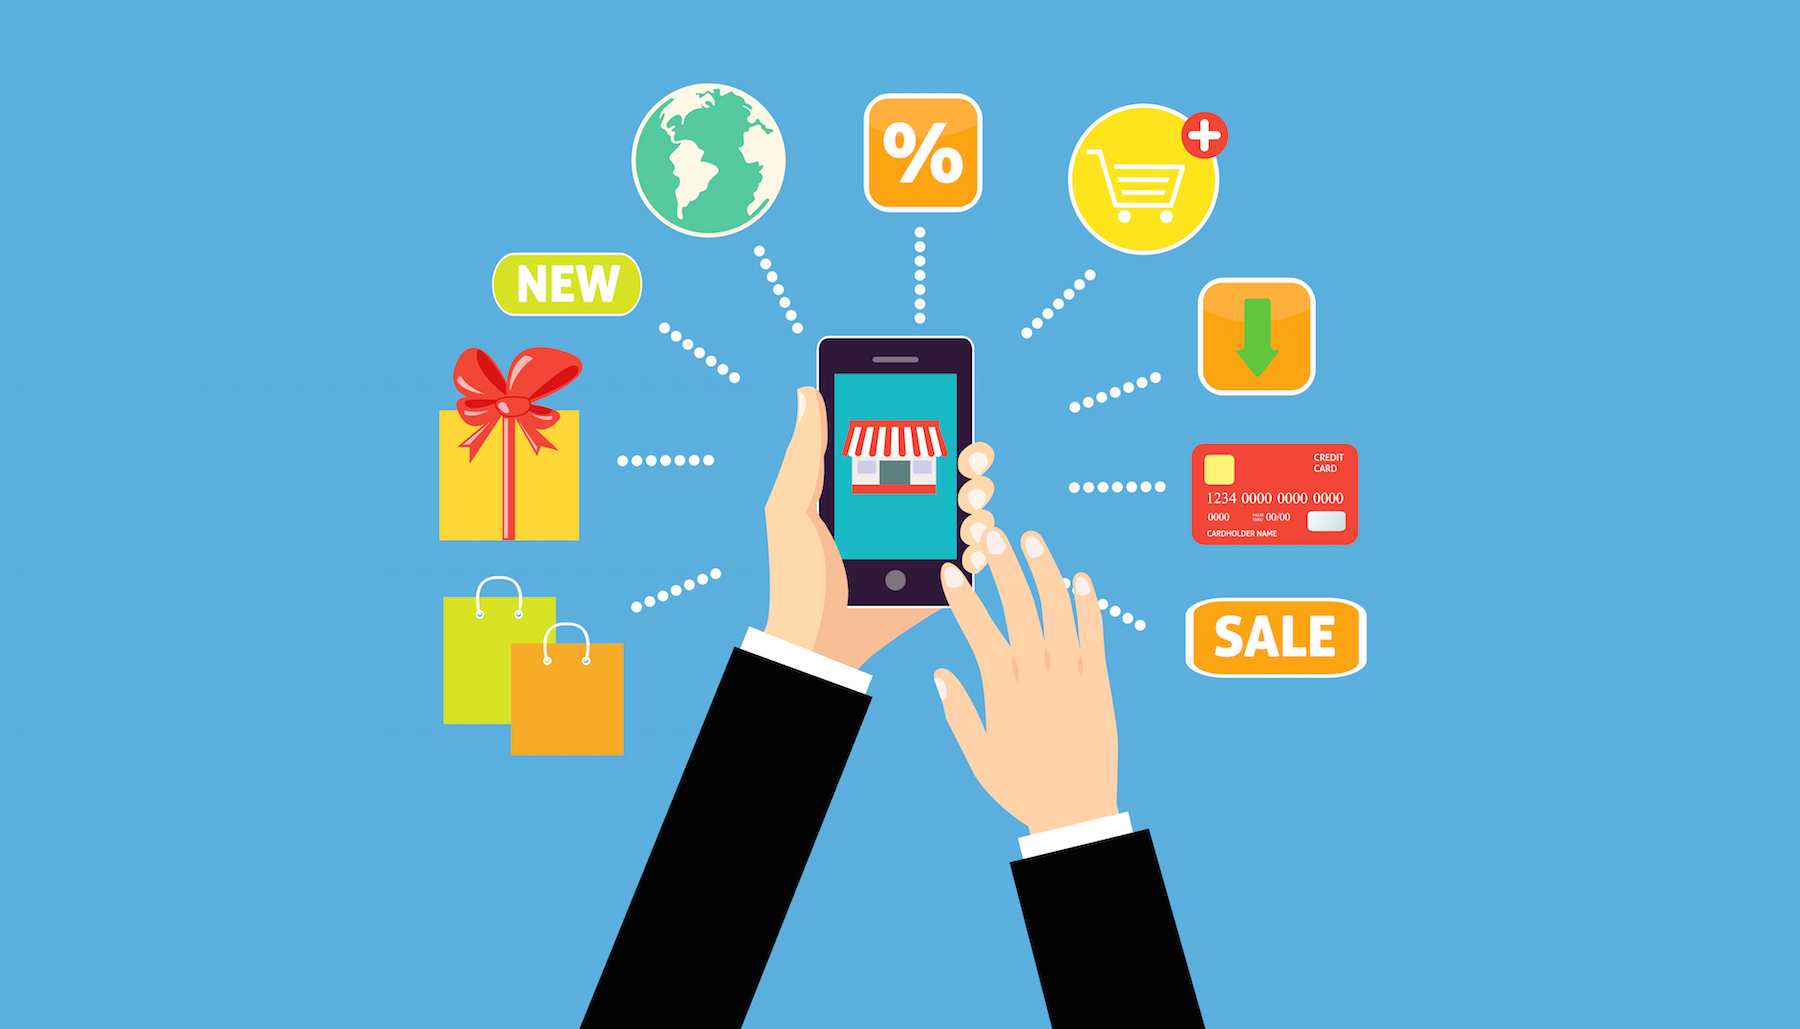 Online Sales Take a Dive? 7 Quick Ways to Boost eCommerce Sales